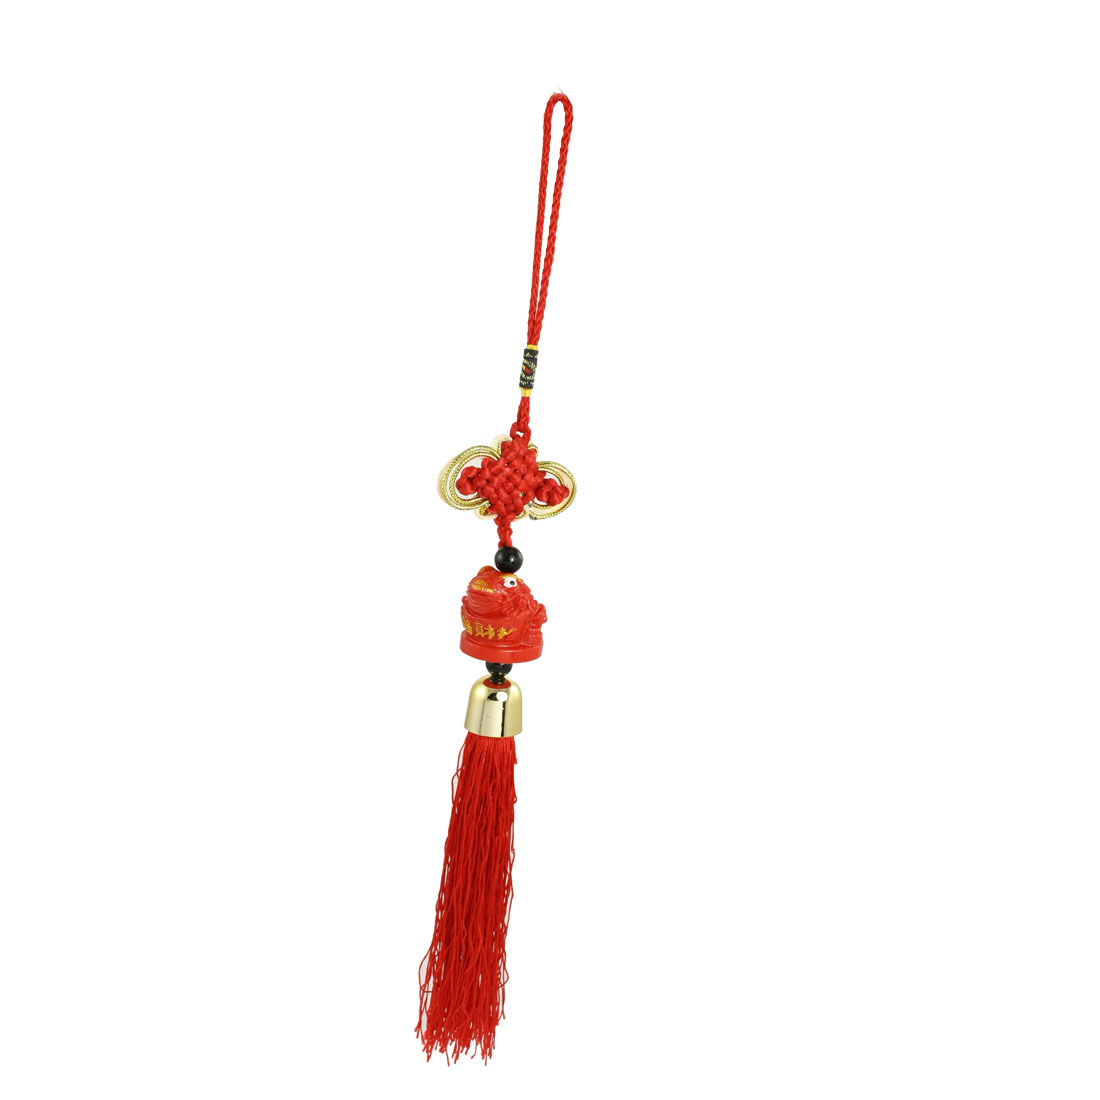 Vehicles Plastic Frog Pendant Red Chinese Knot Nylon Tassel Hanging Ornament